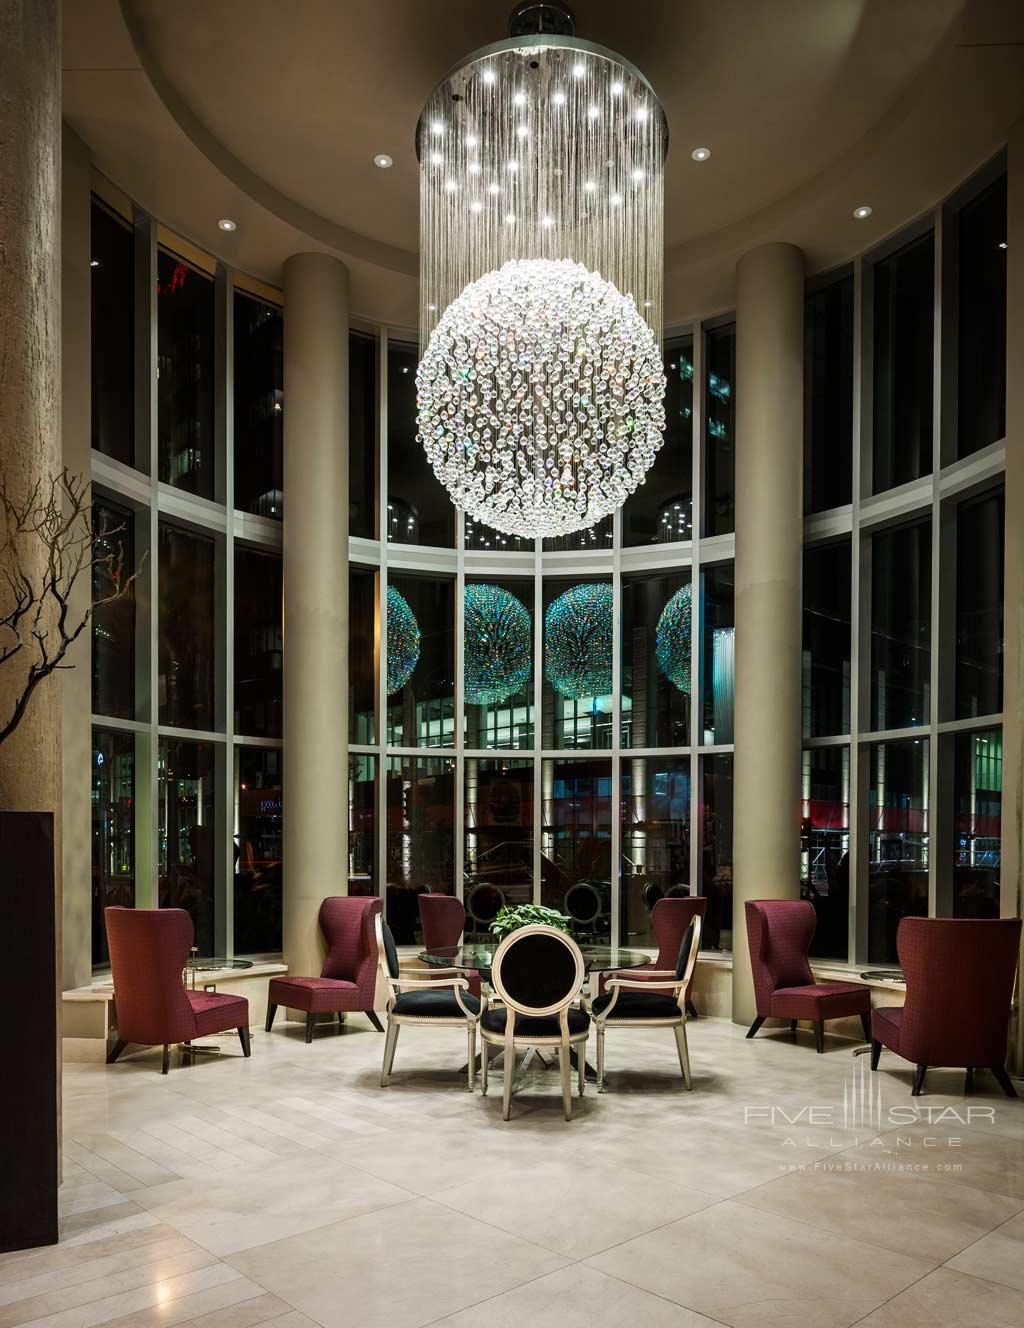 Lobby of Hotel Le Crystal, Montreal, Quebec, Canada